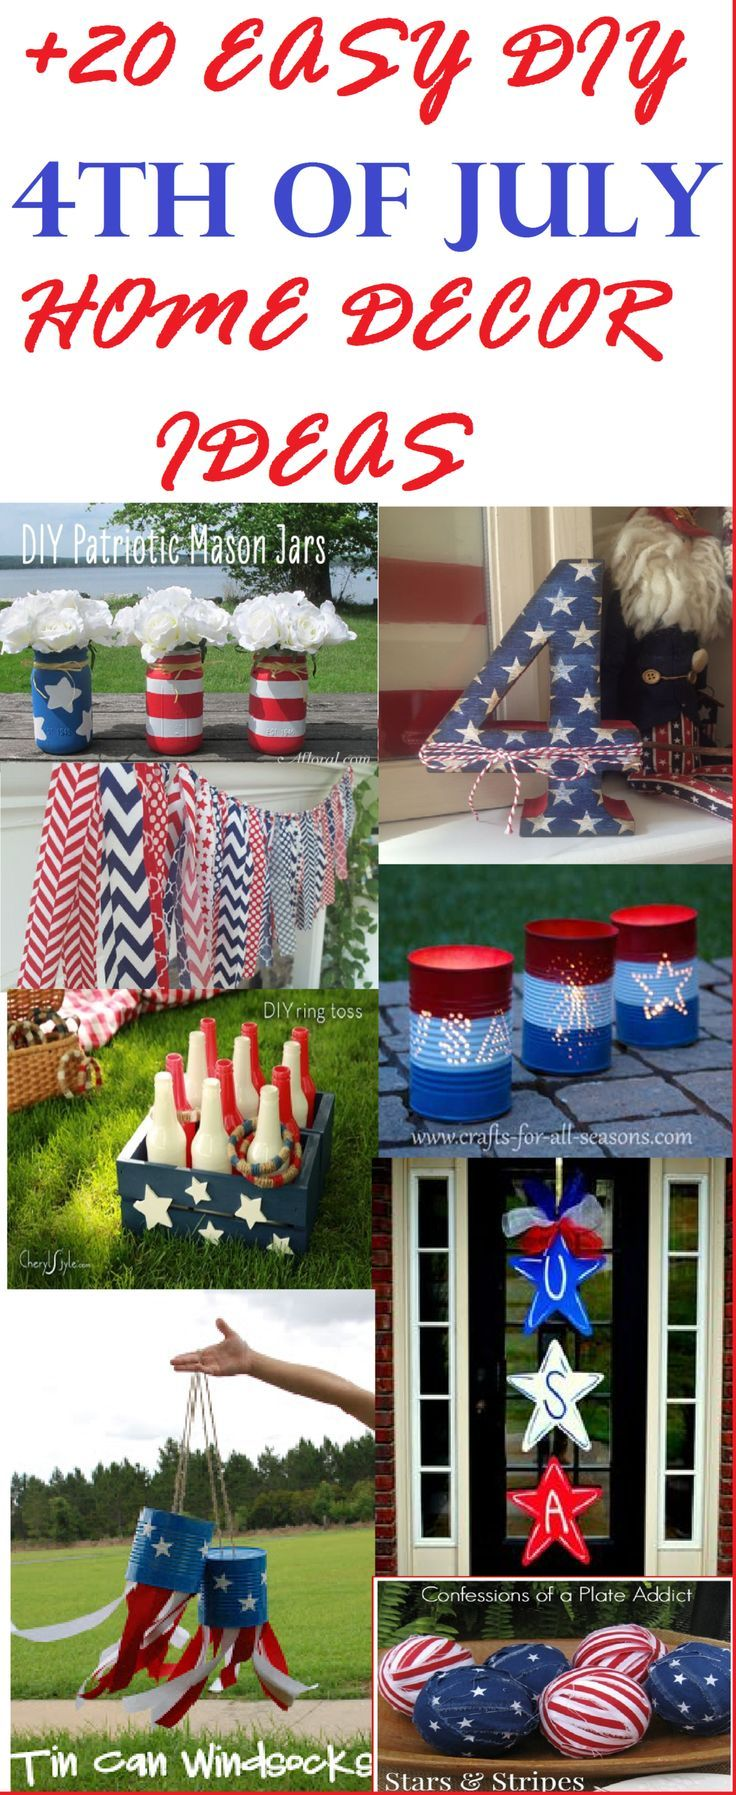 Diy Your Own July 4th Holiday Decor Over 20 Easy Diy 4th Of July Decorations Thrifty Divas